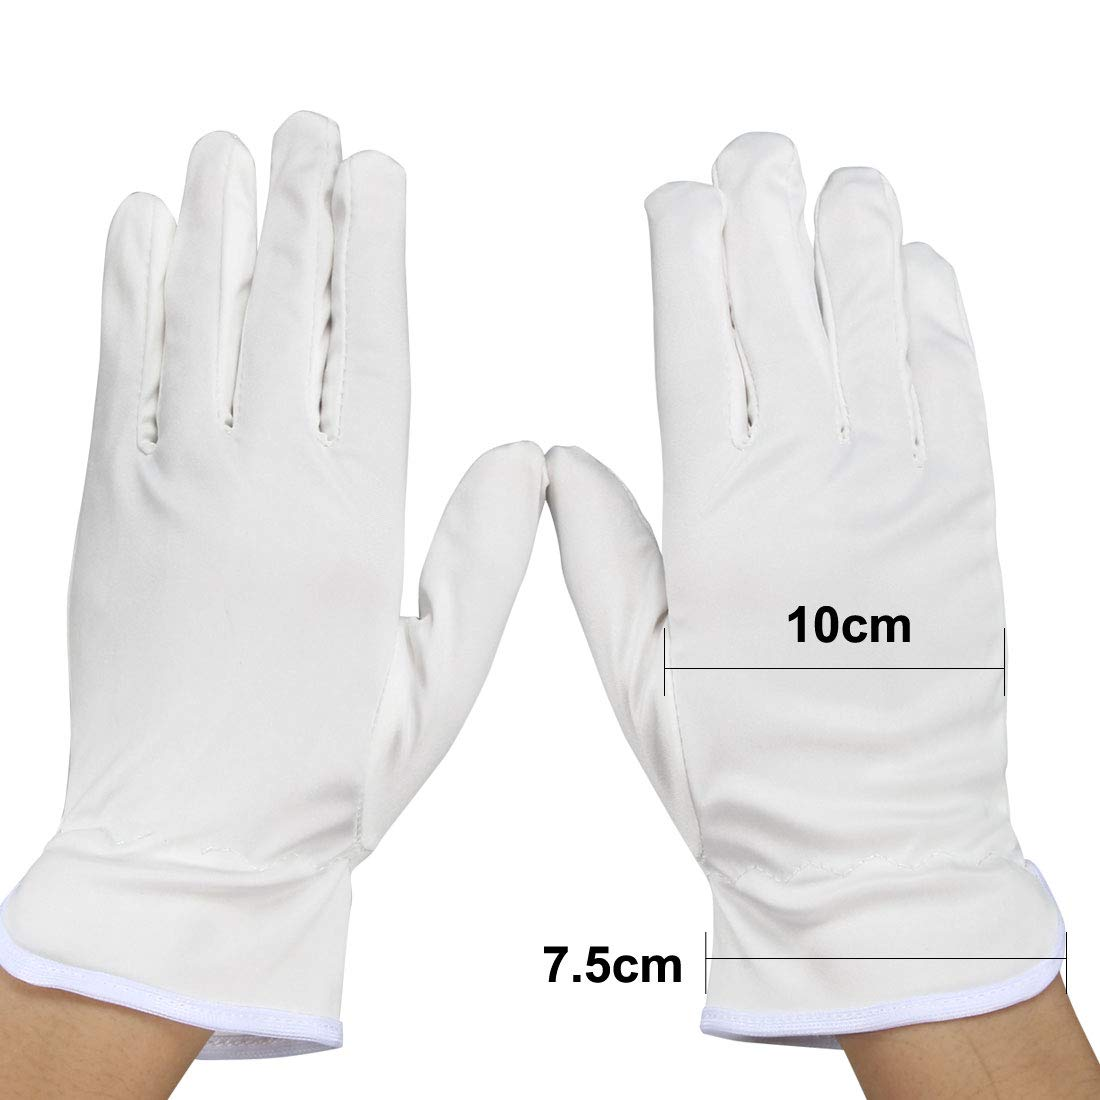 uxcell 1 Pair Microfiber Dust Proof Full Finger Working Protective Gloves White Small